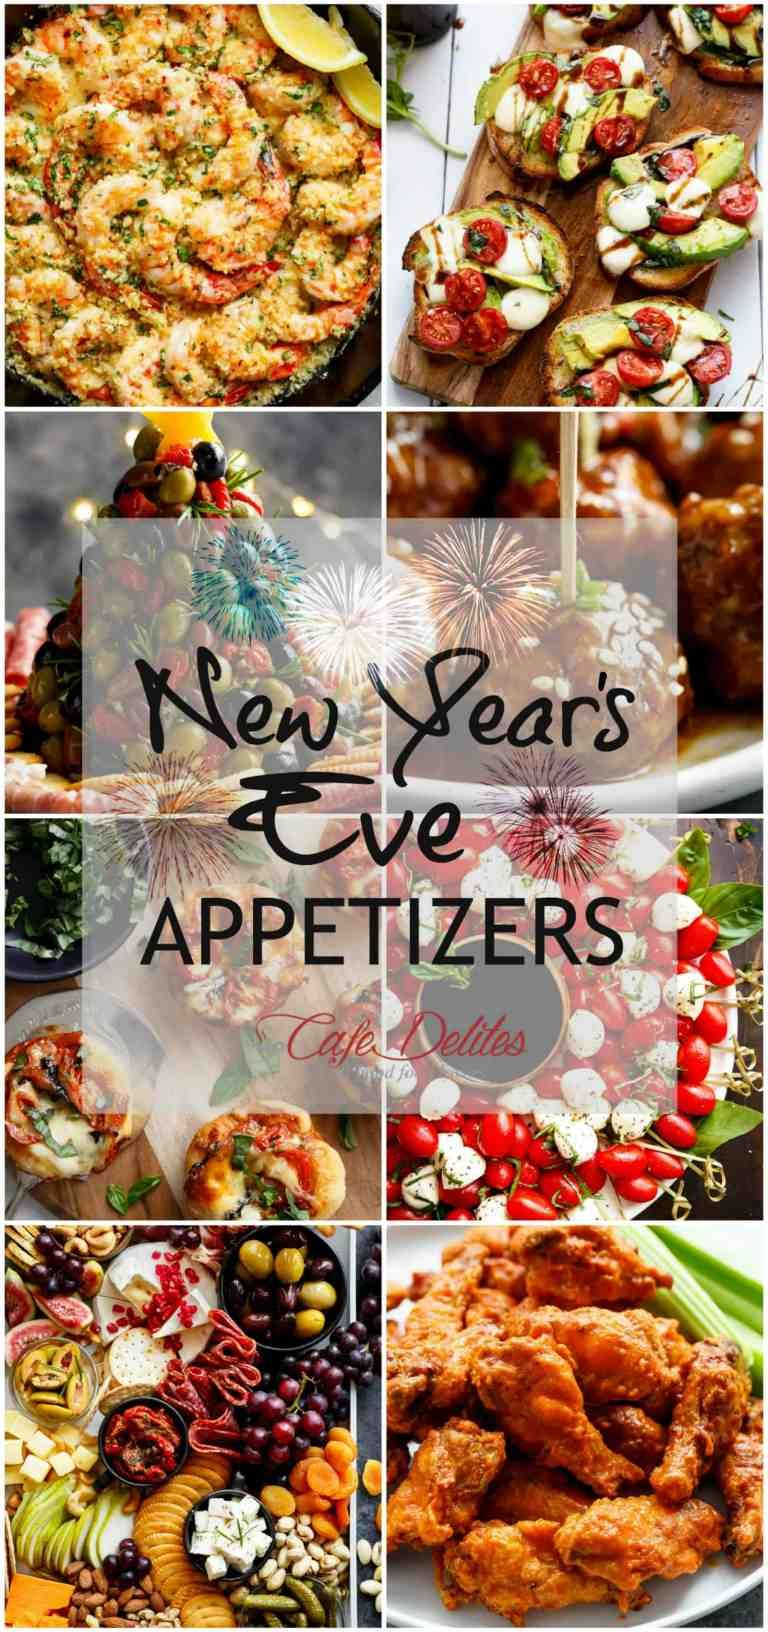 The BEST New Years Appetizers!